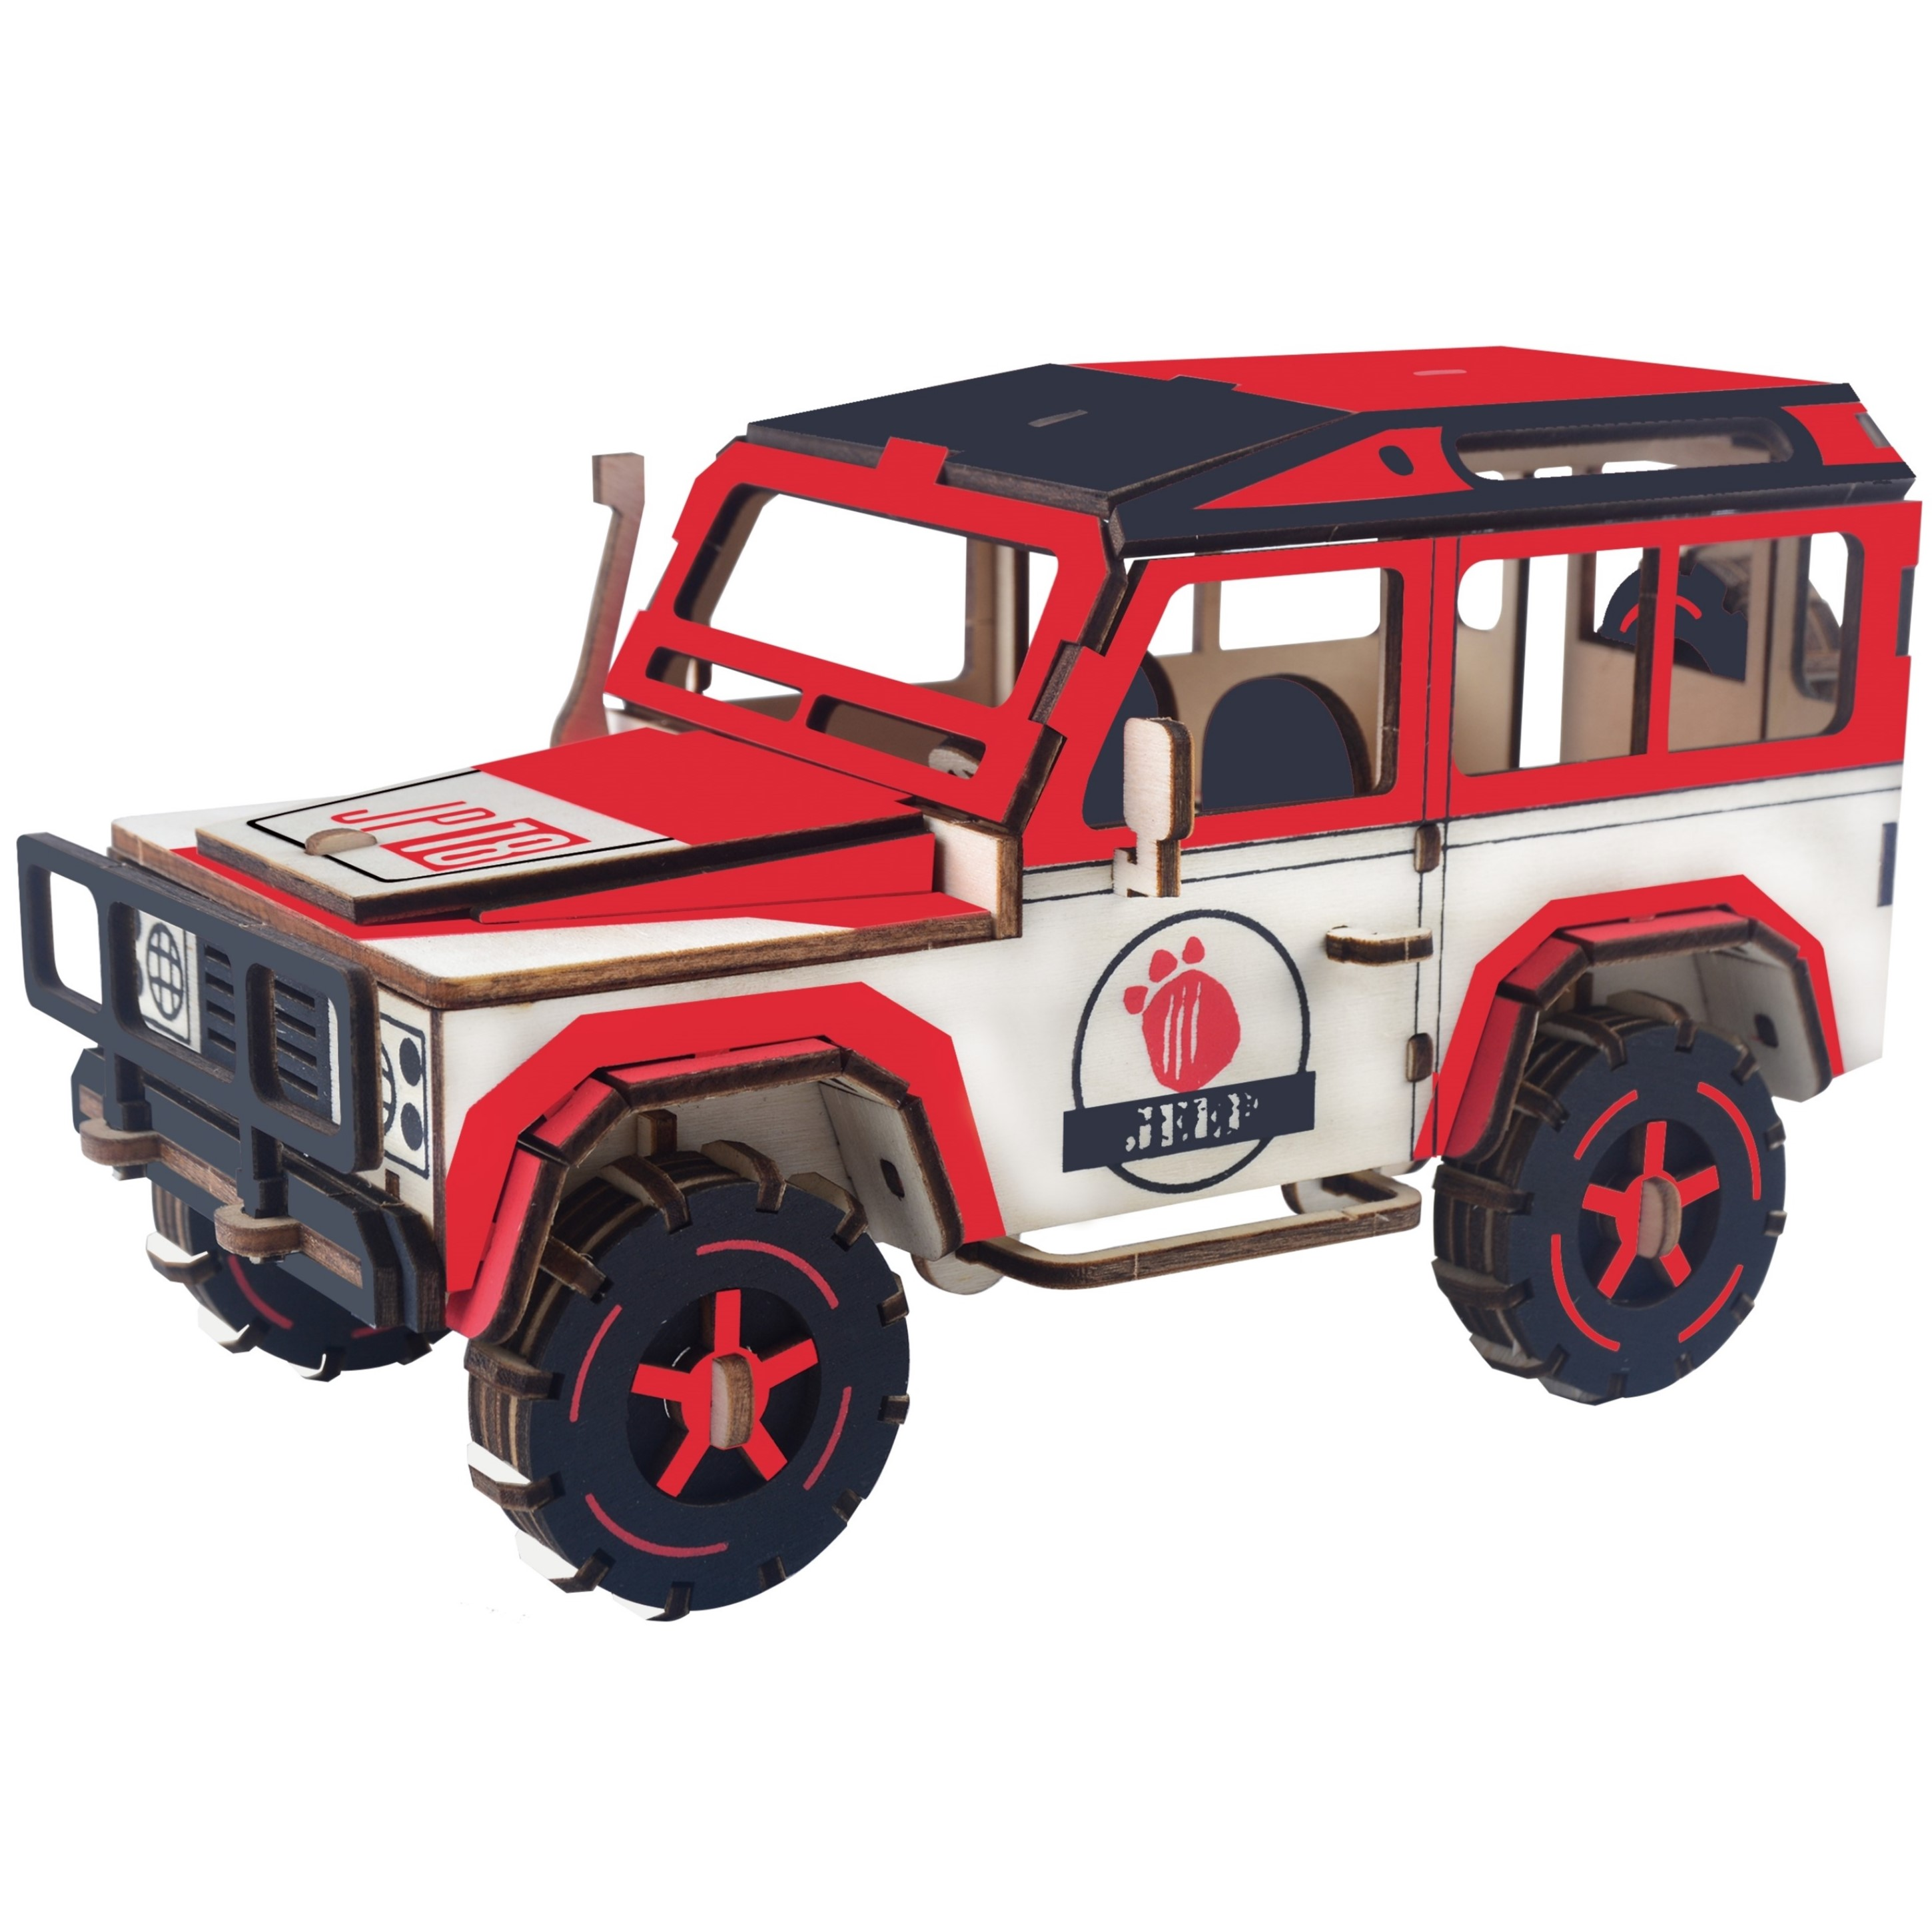 DIY Assembly Vehicles Model Toy 3D Puzzles Game Kit Kids Childrens Wooden Toys